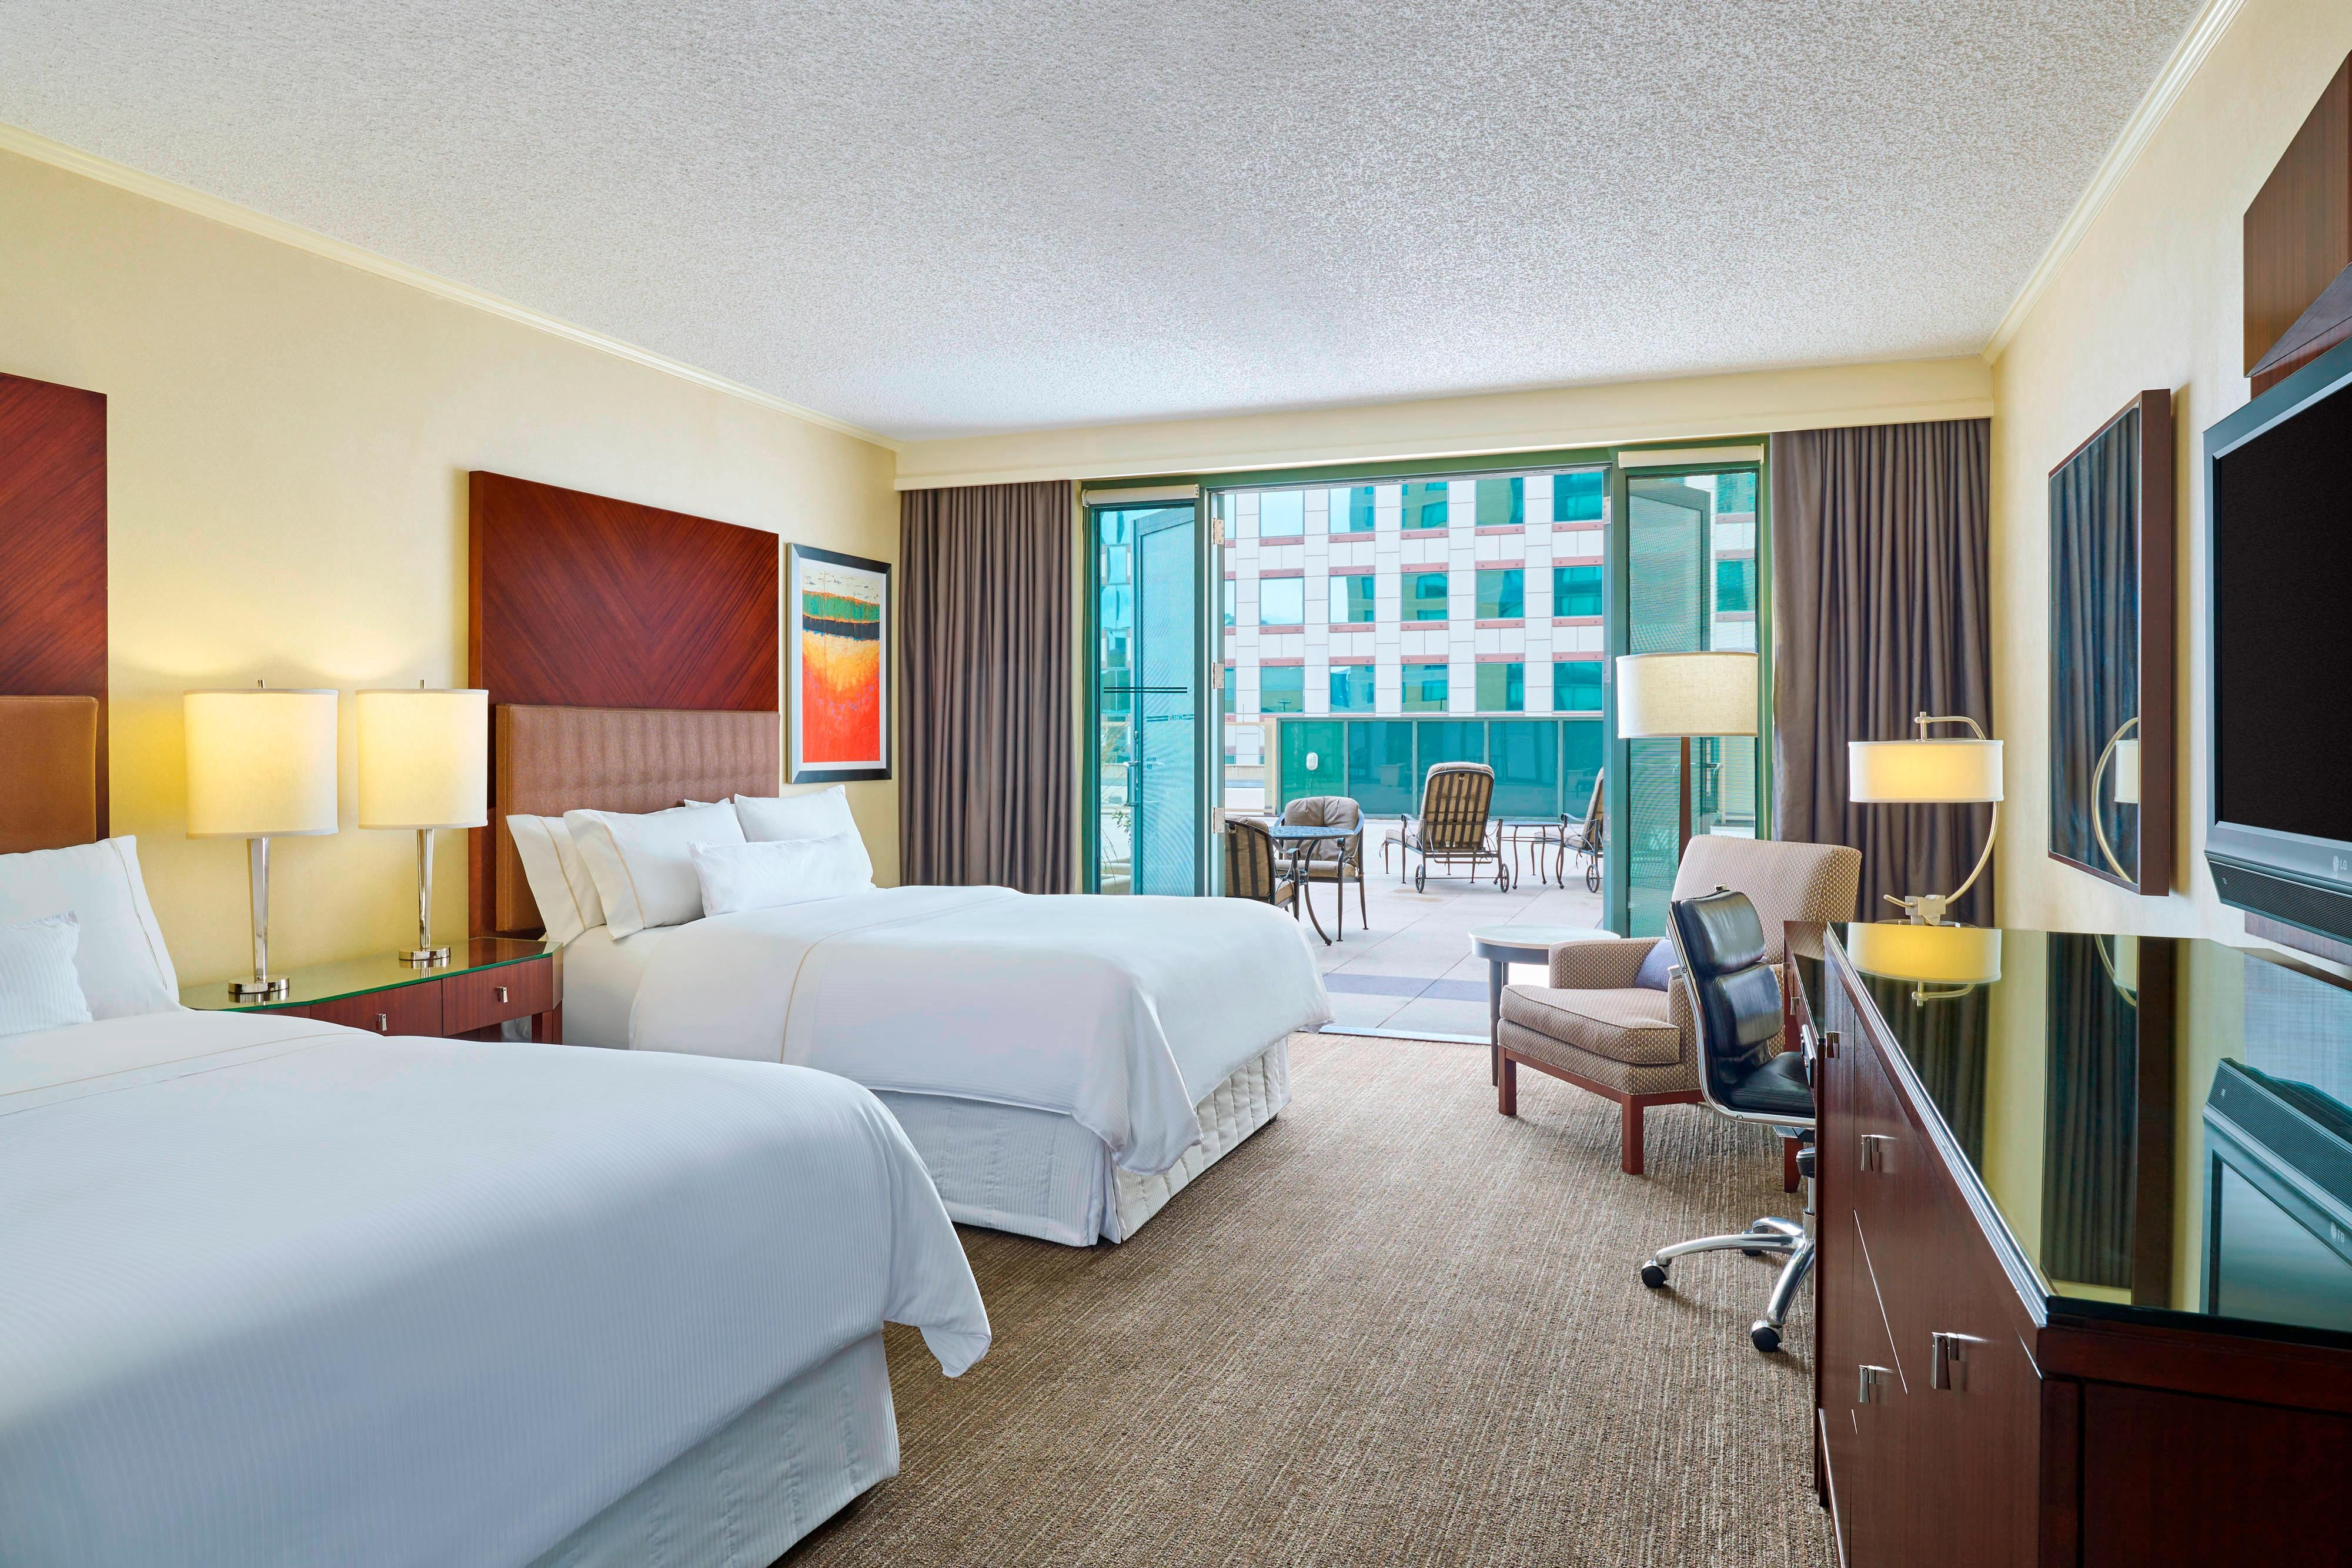 Downtown Denver Accommodations - Hotel Rooms | The Westin